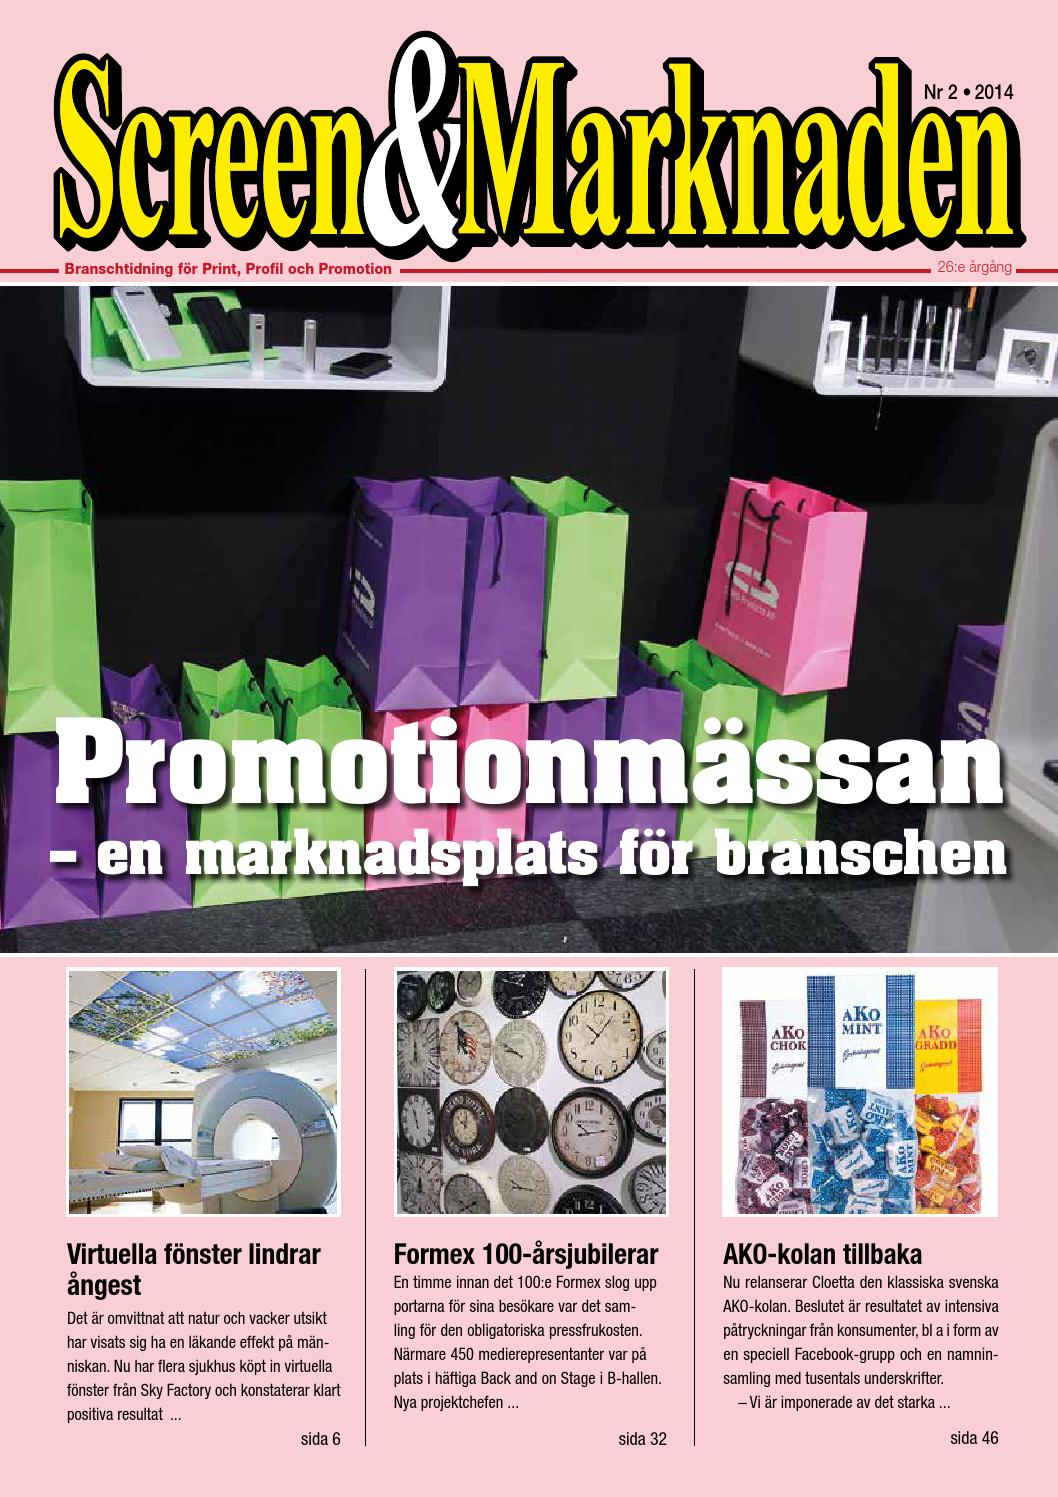 Screenmarknaden 2 2014 by Martin Eriksson - issuu